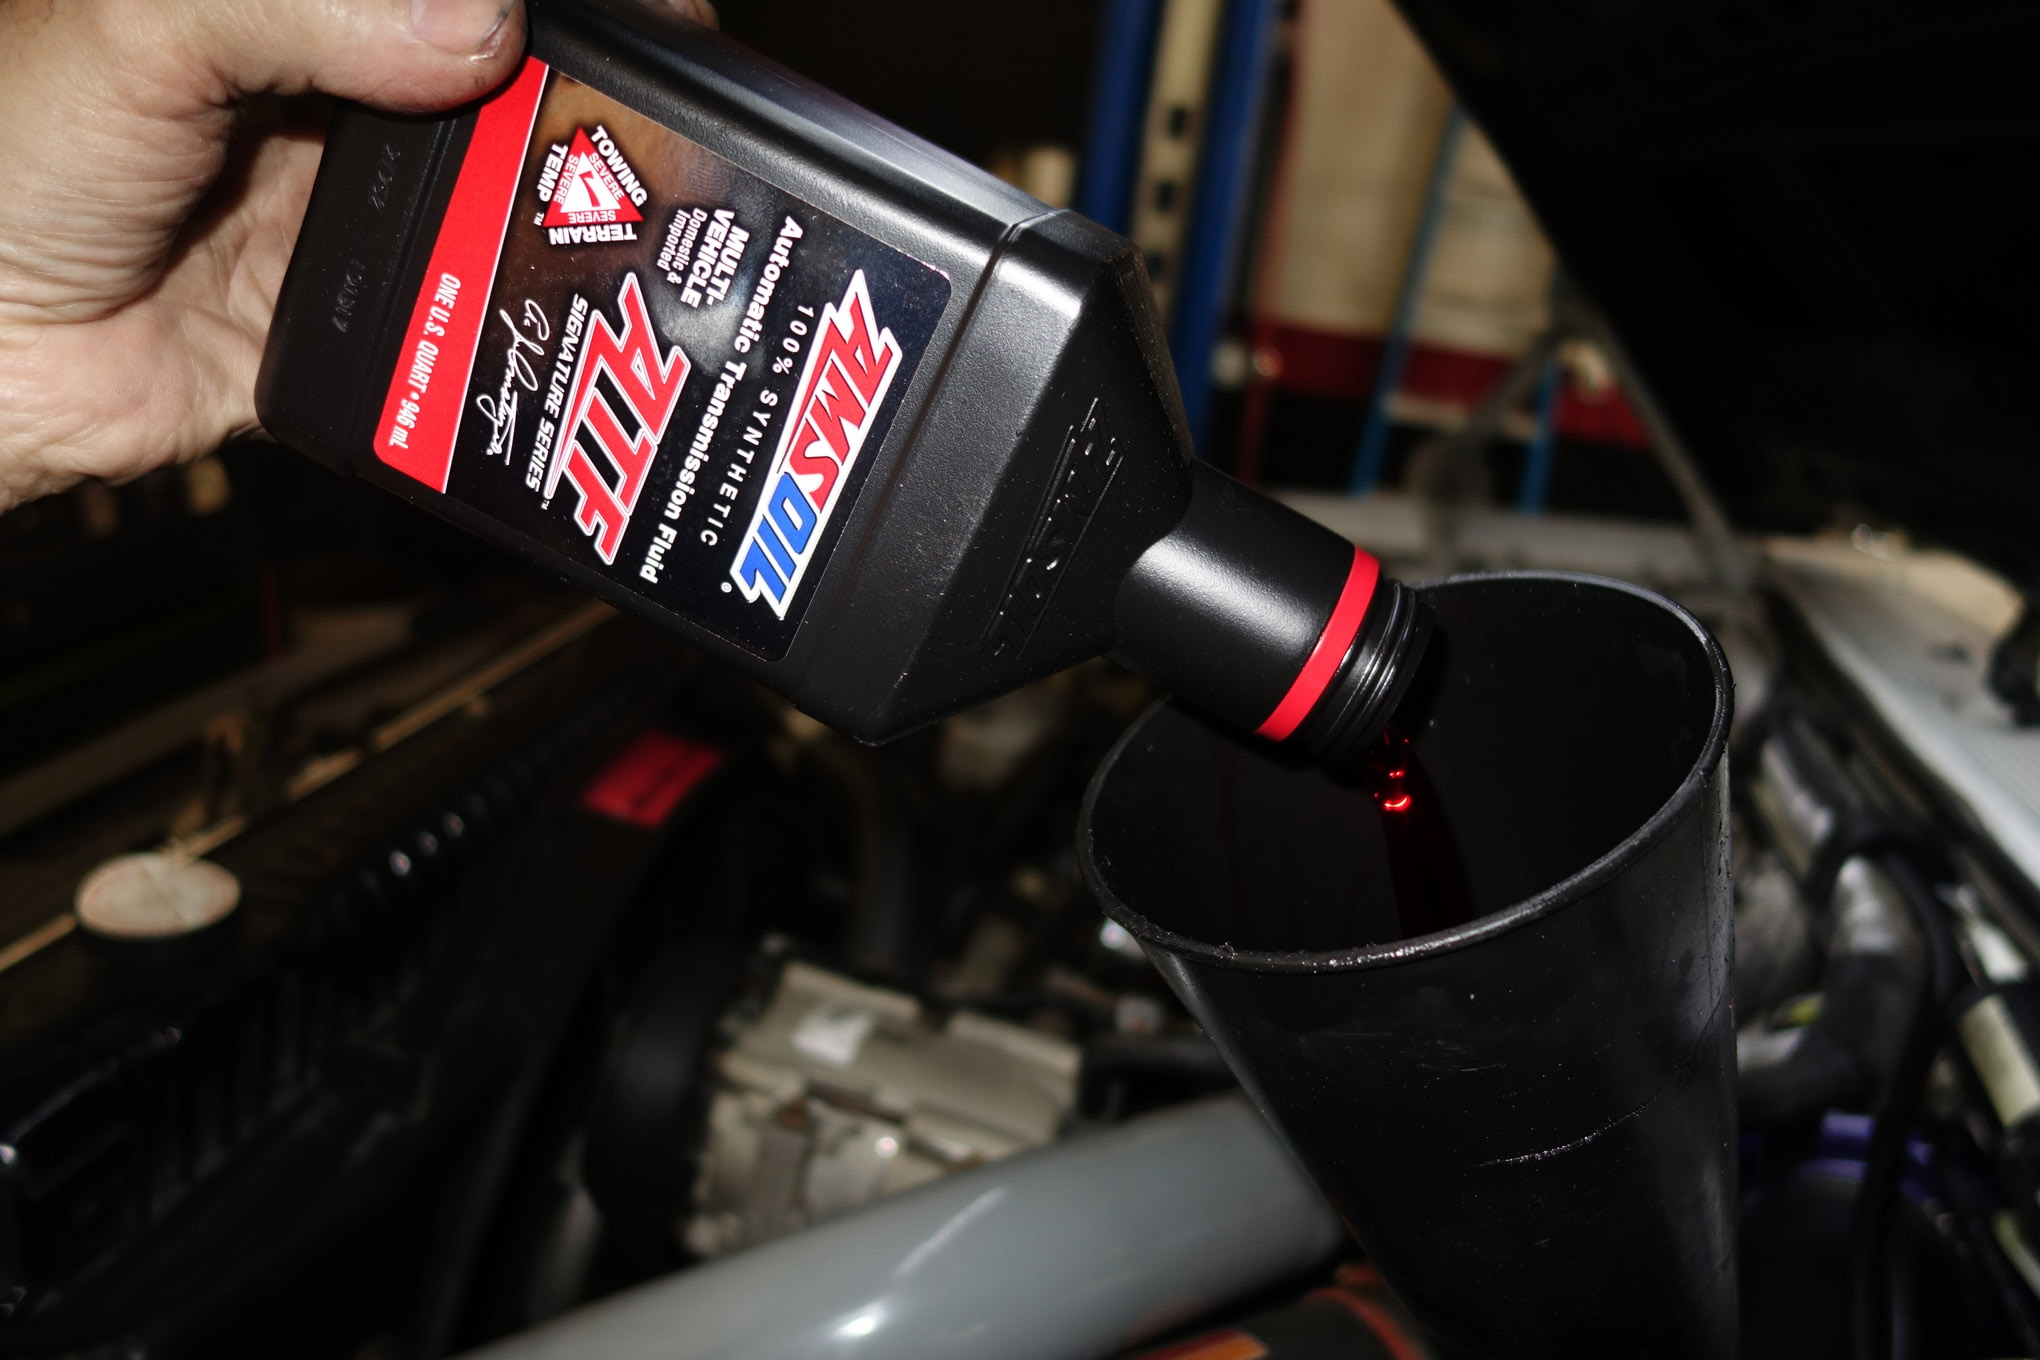 Installing the Last Automatic Transmission Your Hardworking Rig Will